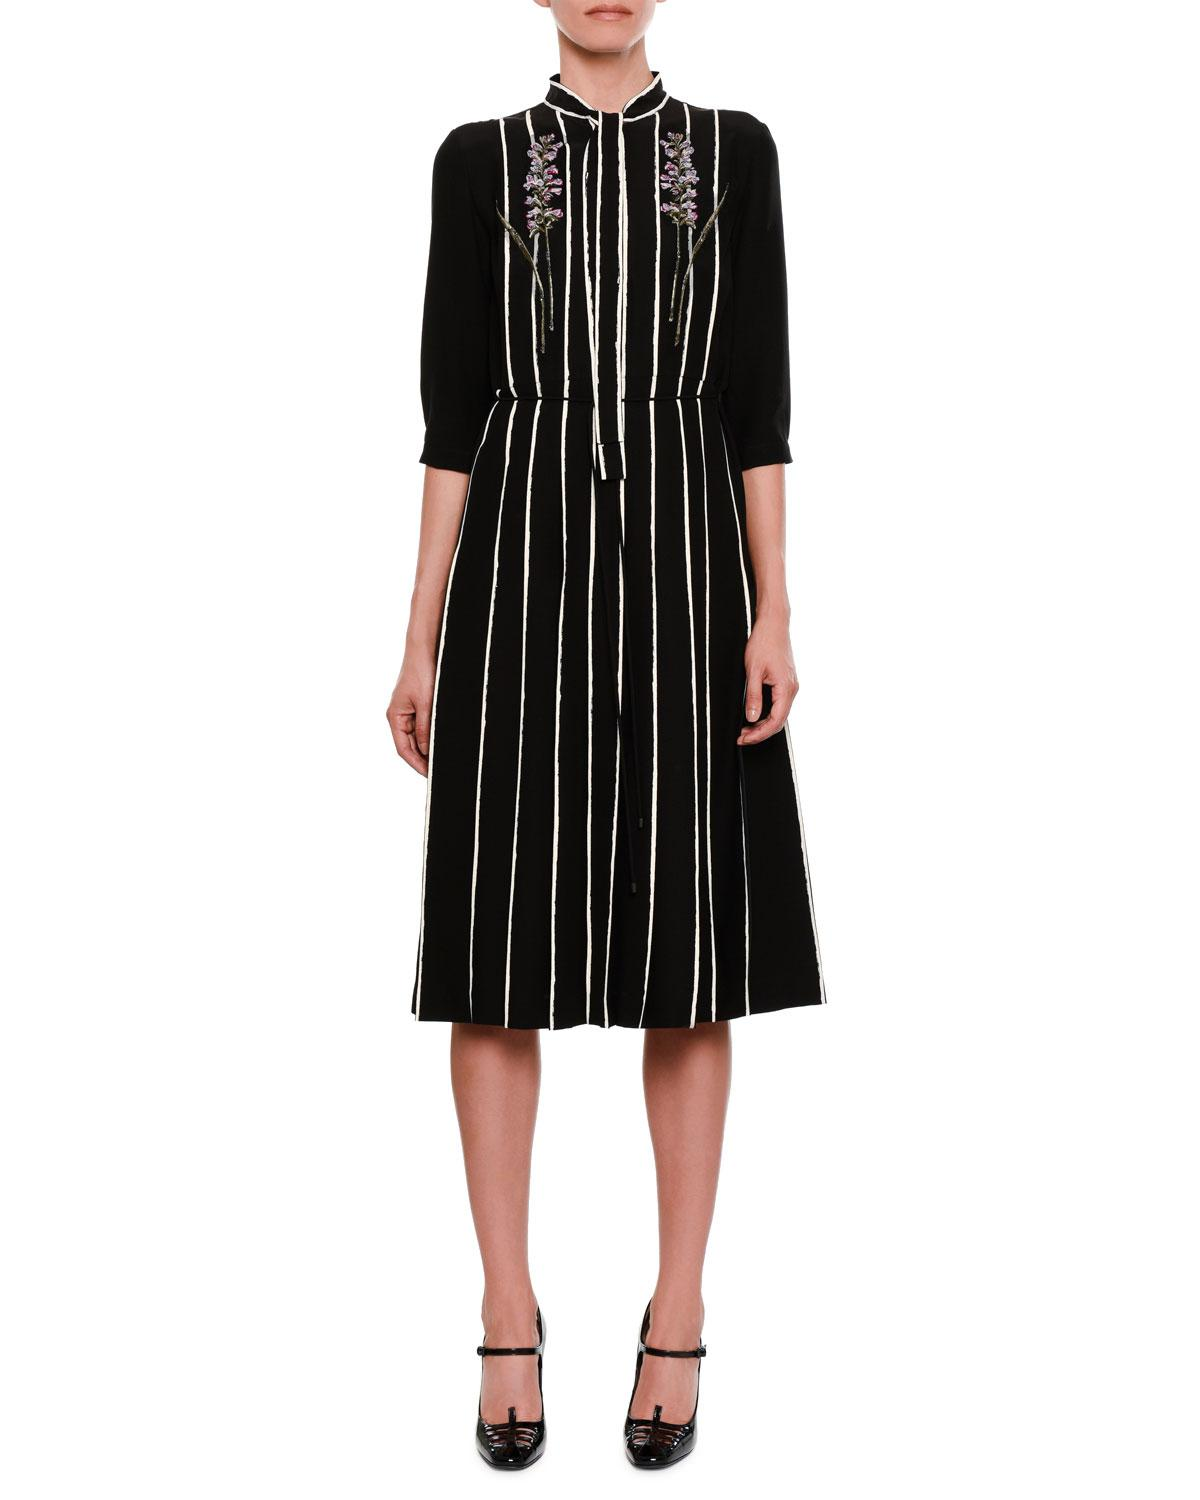 bottega-veneta-BLACKWHITE-Striped-Floral-embroidered-Tie-neck-Dress.jpeg